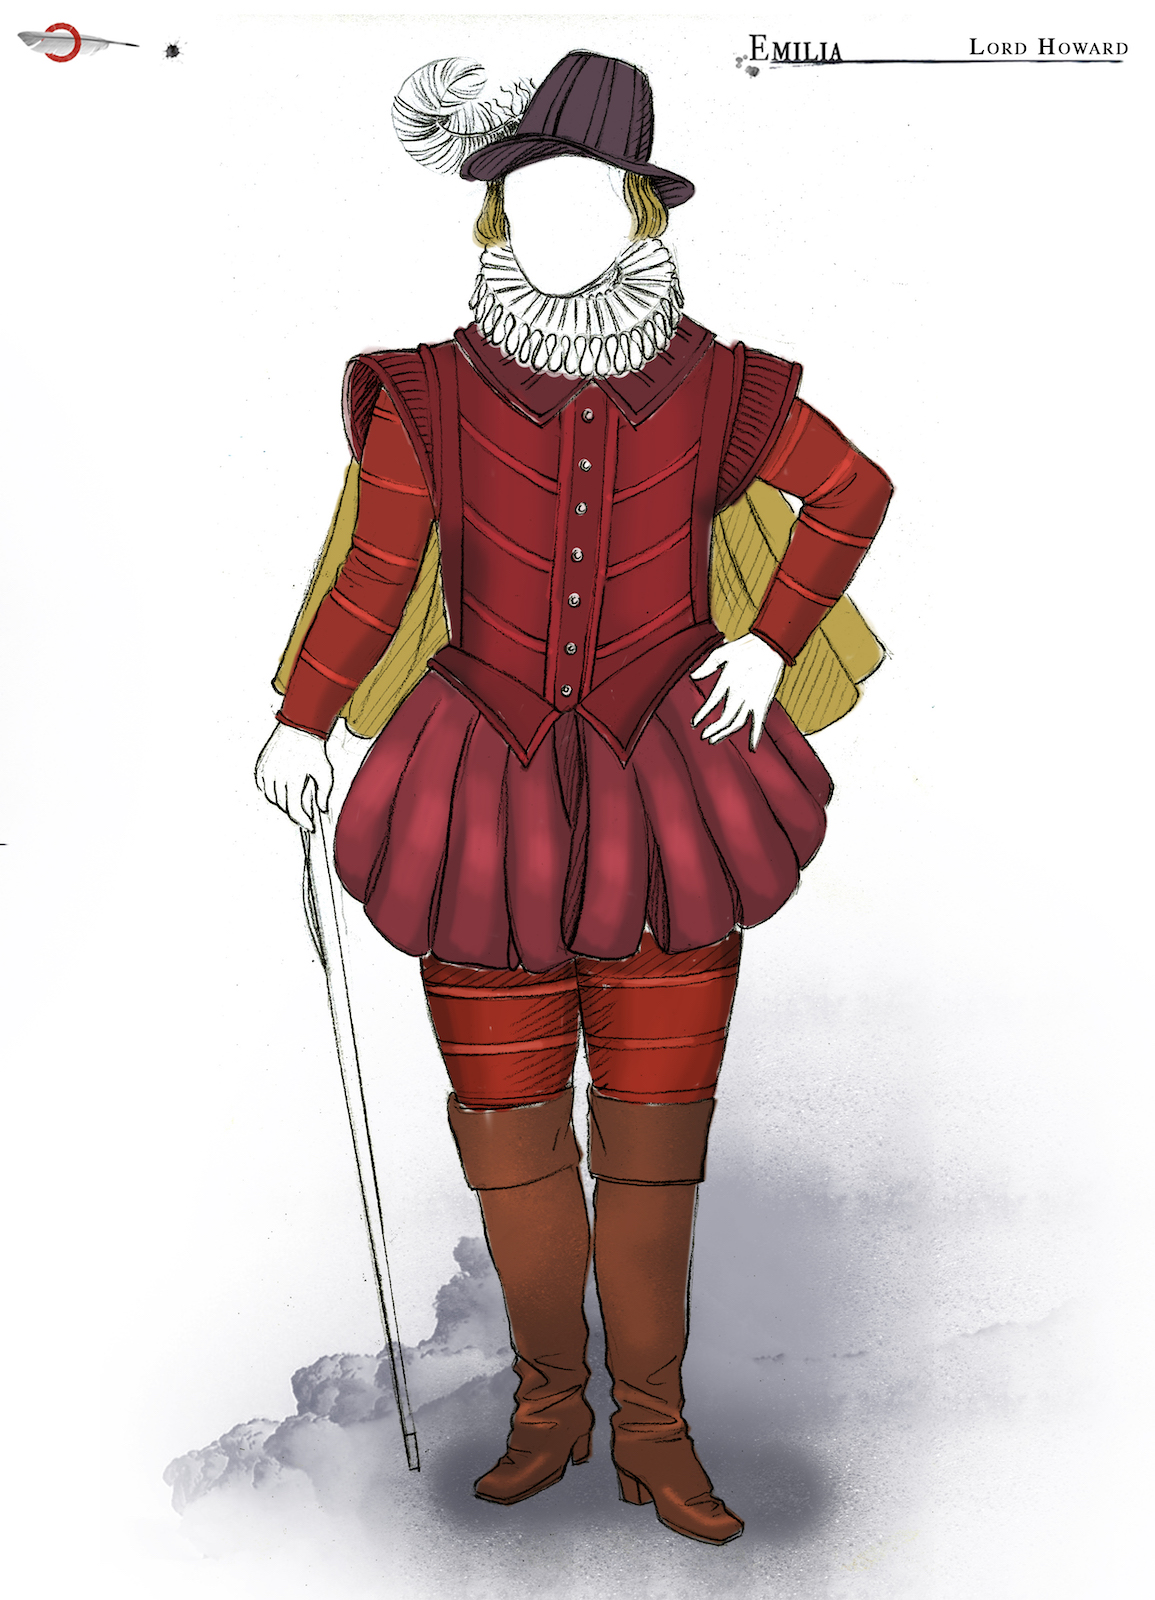 A costume sketch of red male Elizabethan outfit